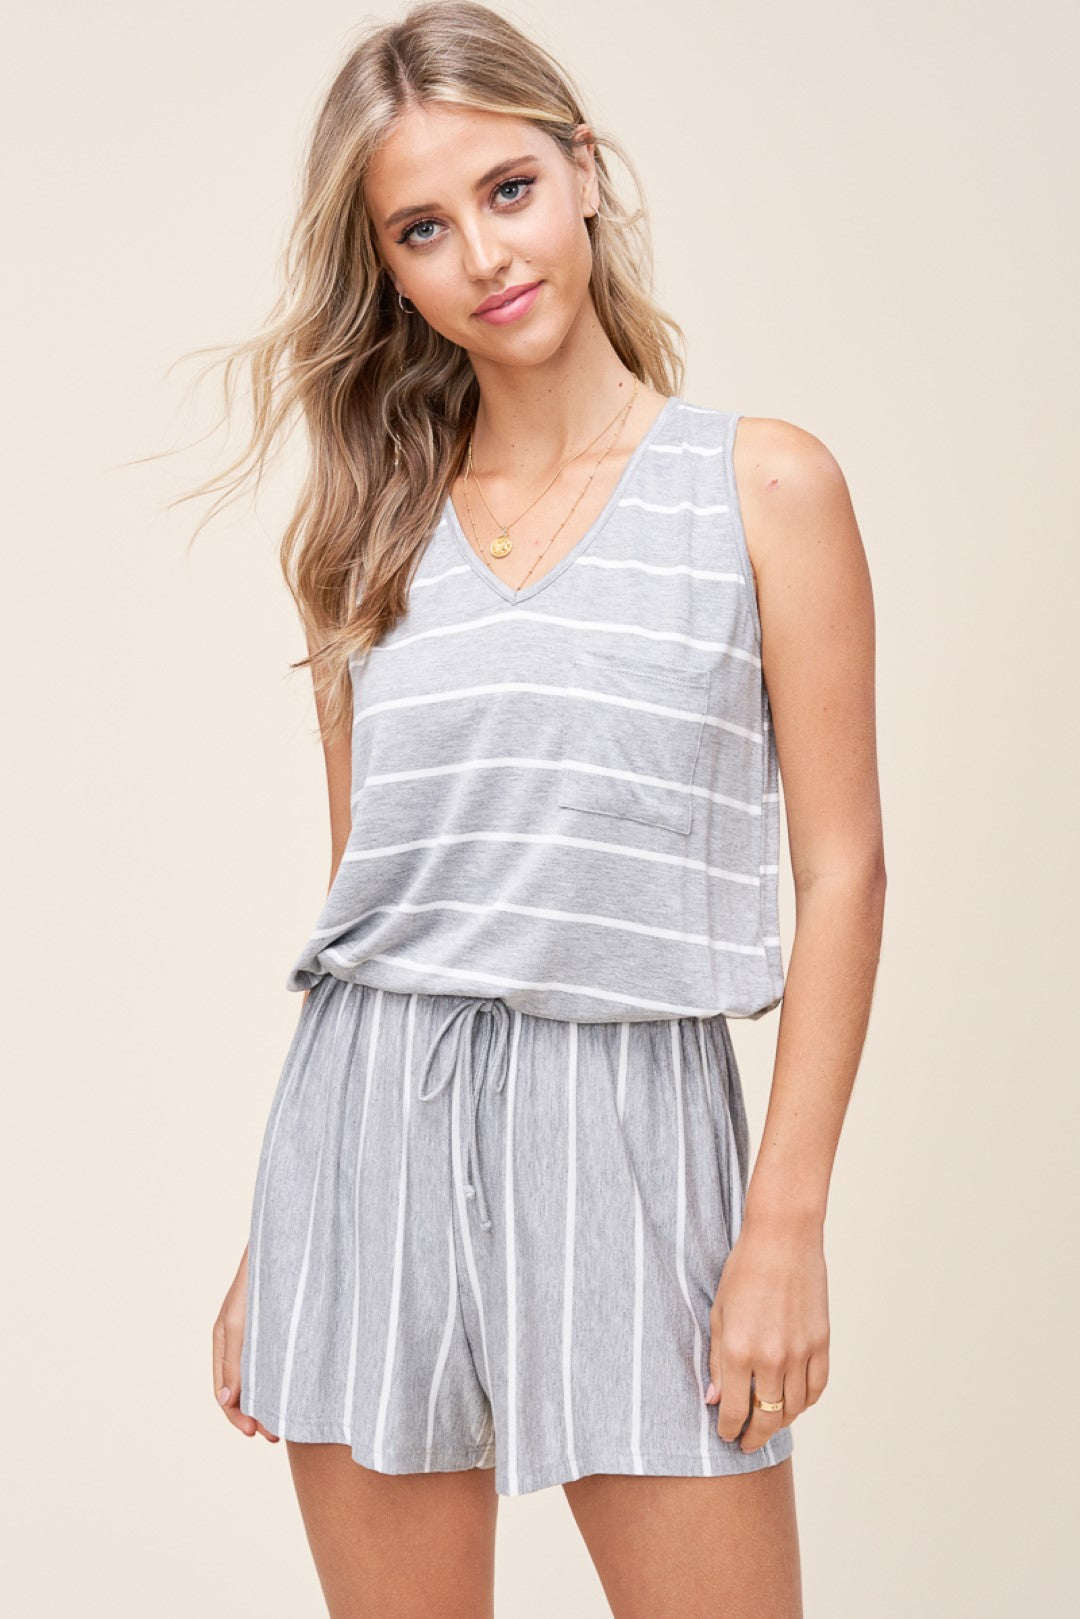 Grey & White Striped Romper